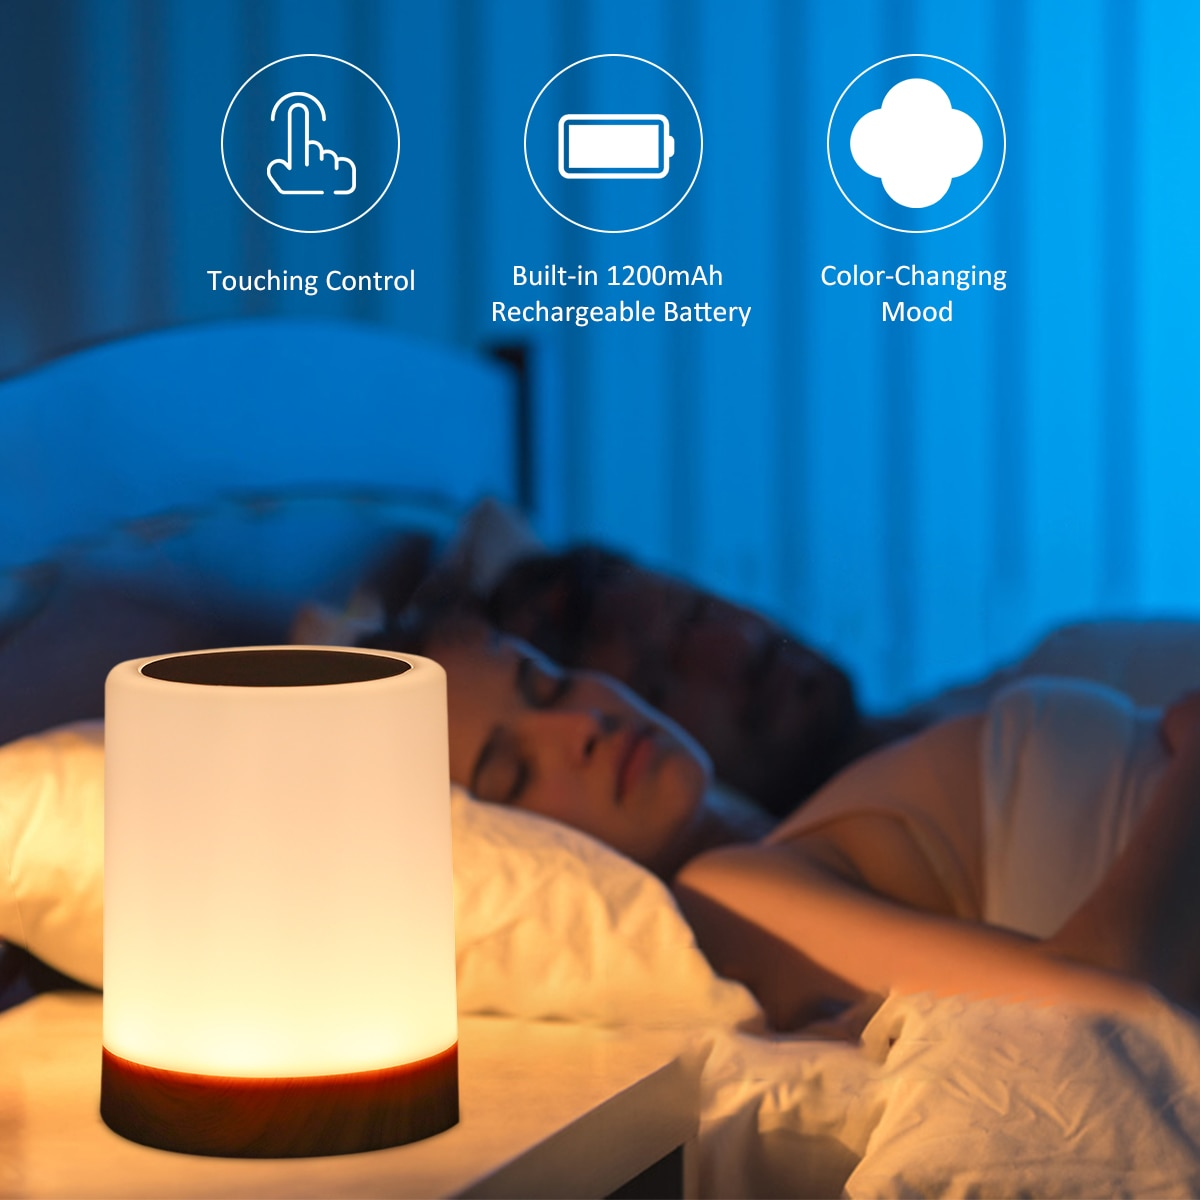 USB Rechargeable Touching Control Bedside Light Dimmable Table Lamp Warm White & RGB Night Light for Living Room Bedrooms Office